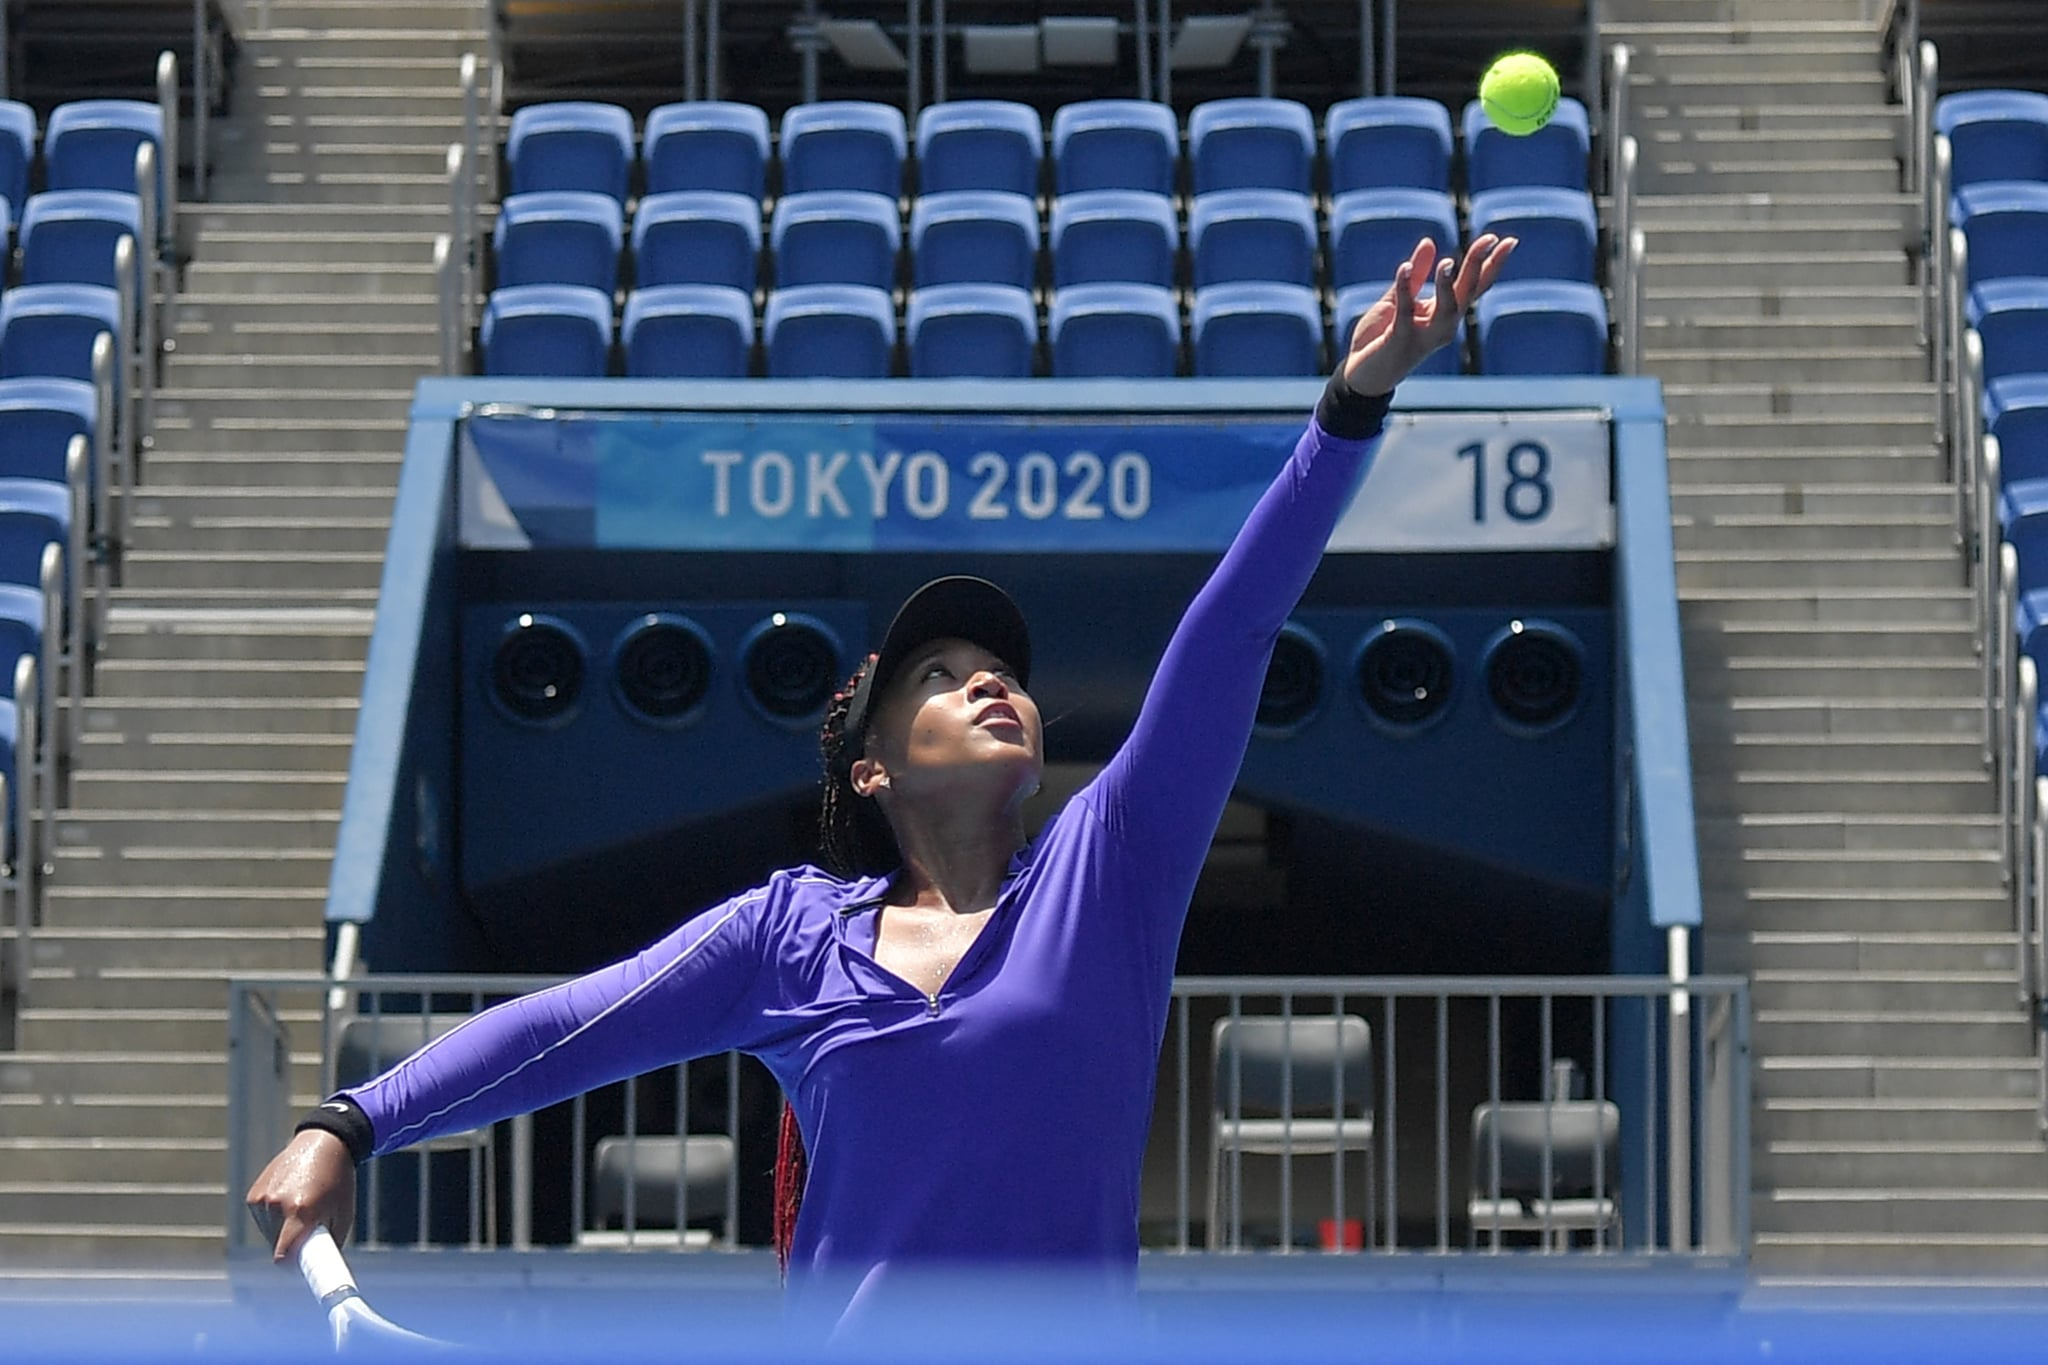 Japan's Naomi Osaka attends a training session at the Ariake Tennis Park ahead of the start of the Tokyo 2020 Olympic Games in Tokyo on July 20, 2021. (Photo by Tiziana FABI / AFP) (Photo by TIZIANA FABI/AFP via Getty Images)